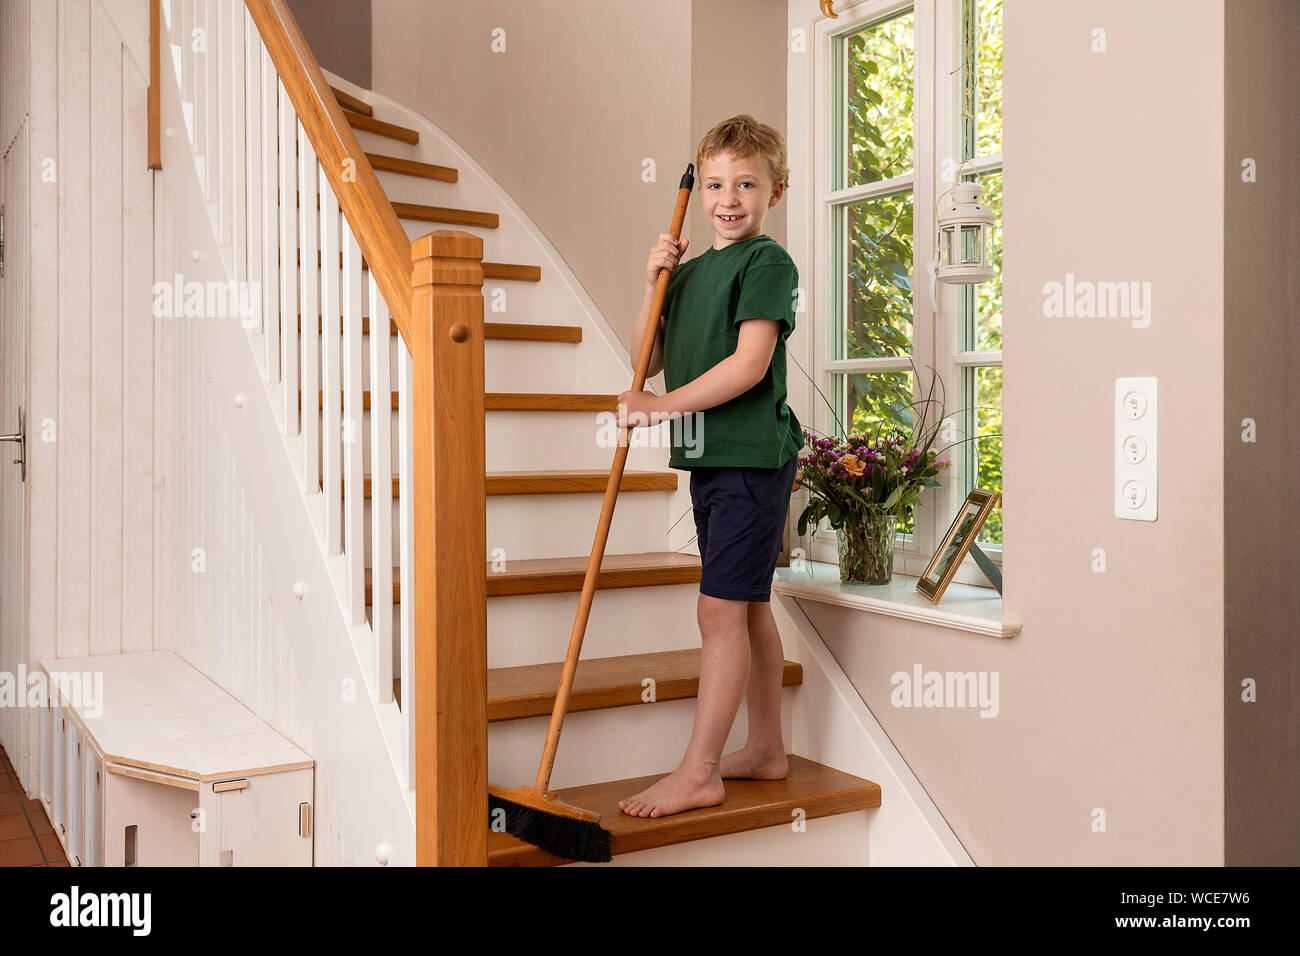 Boy, 8 years, helping at home in the household, sweeping the stairs with a broom. Stock Photo